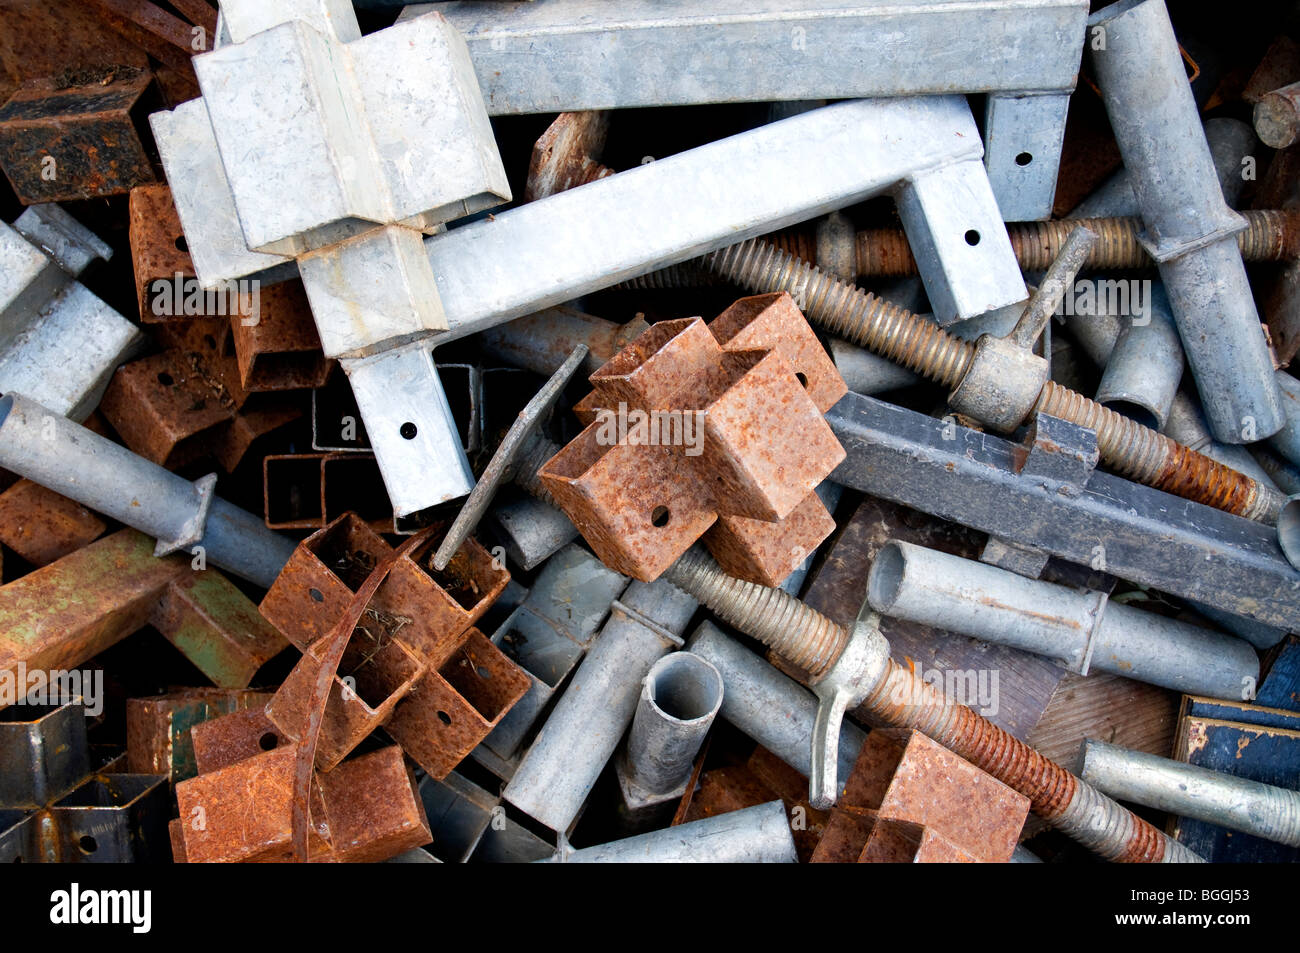 Geometric shapes of scaffolding poles on a construction site - Stock Image